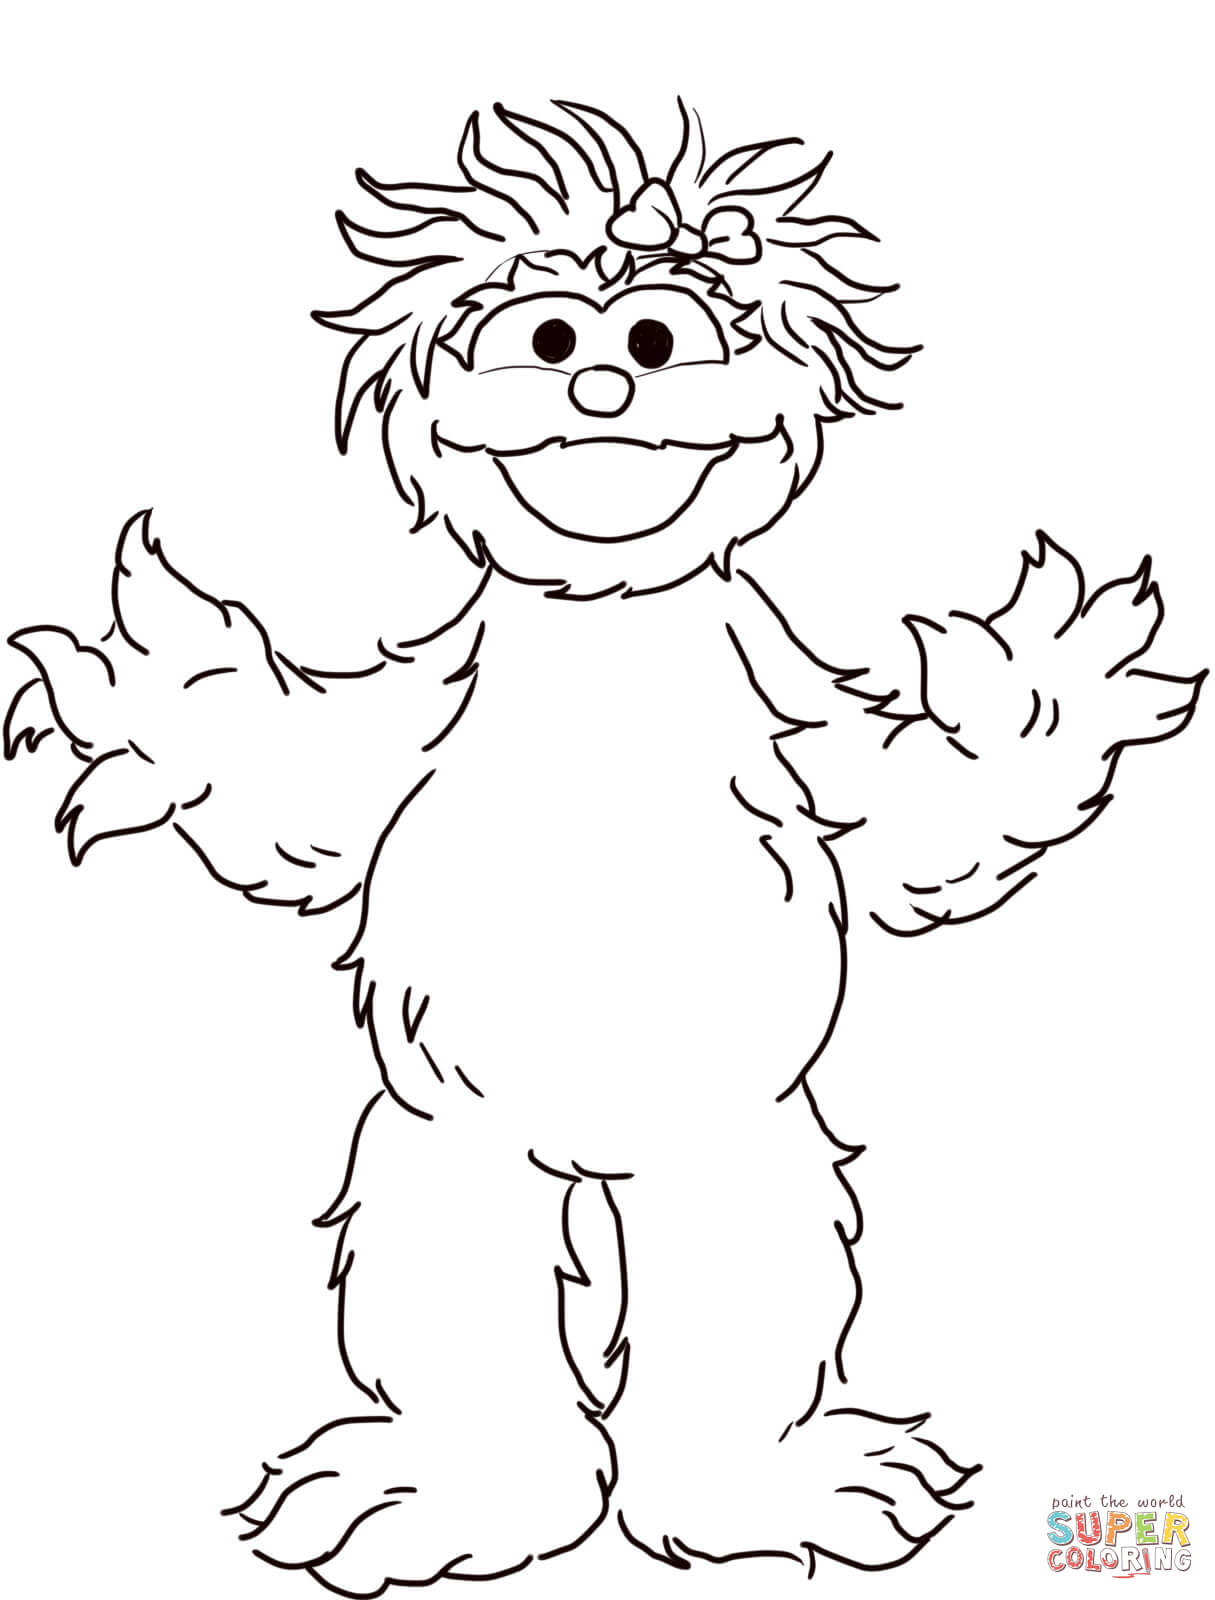 free coloring pages download sesame street rosita coloring page free printable coloring pages of sesame